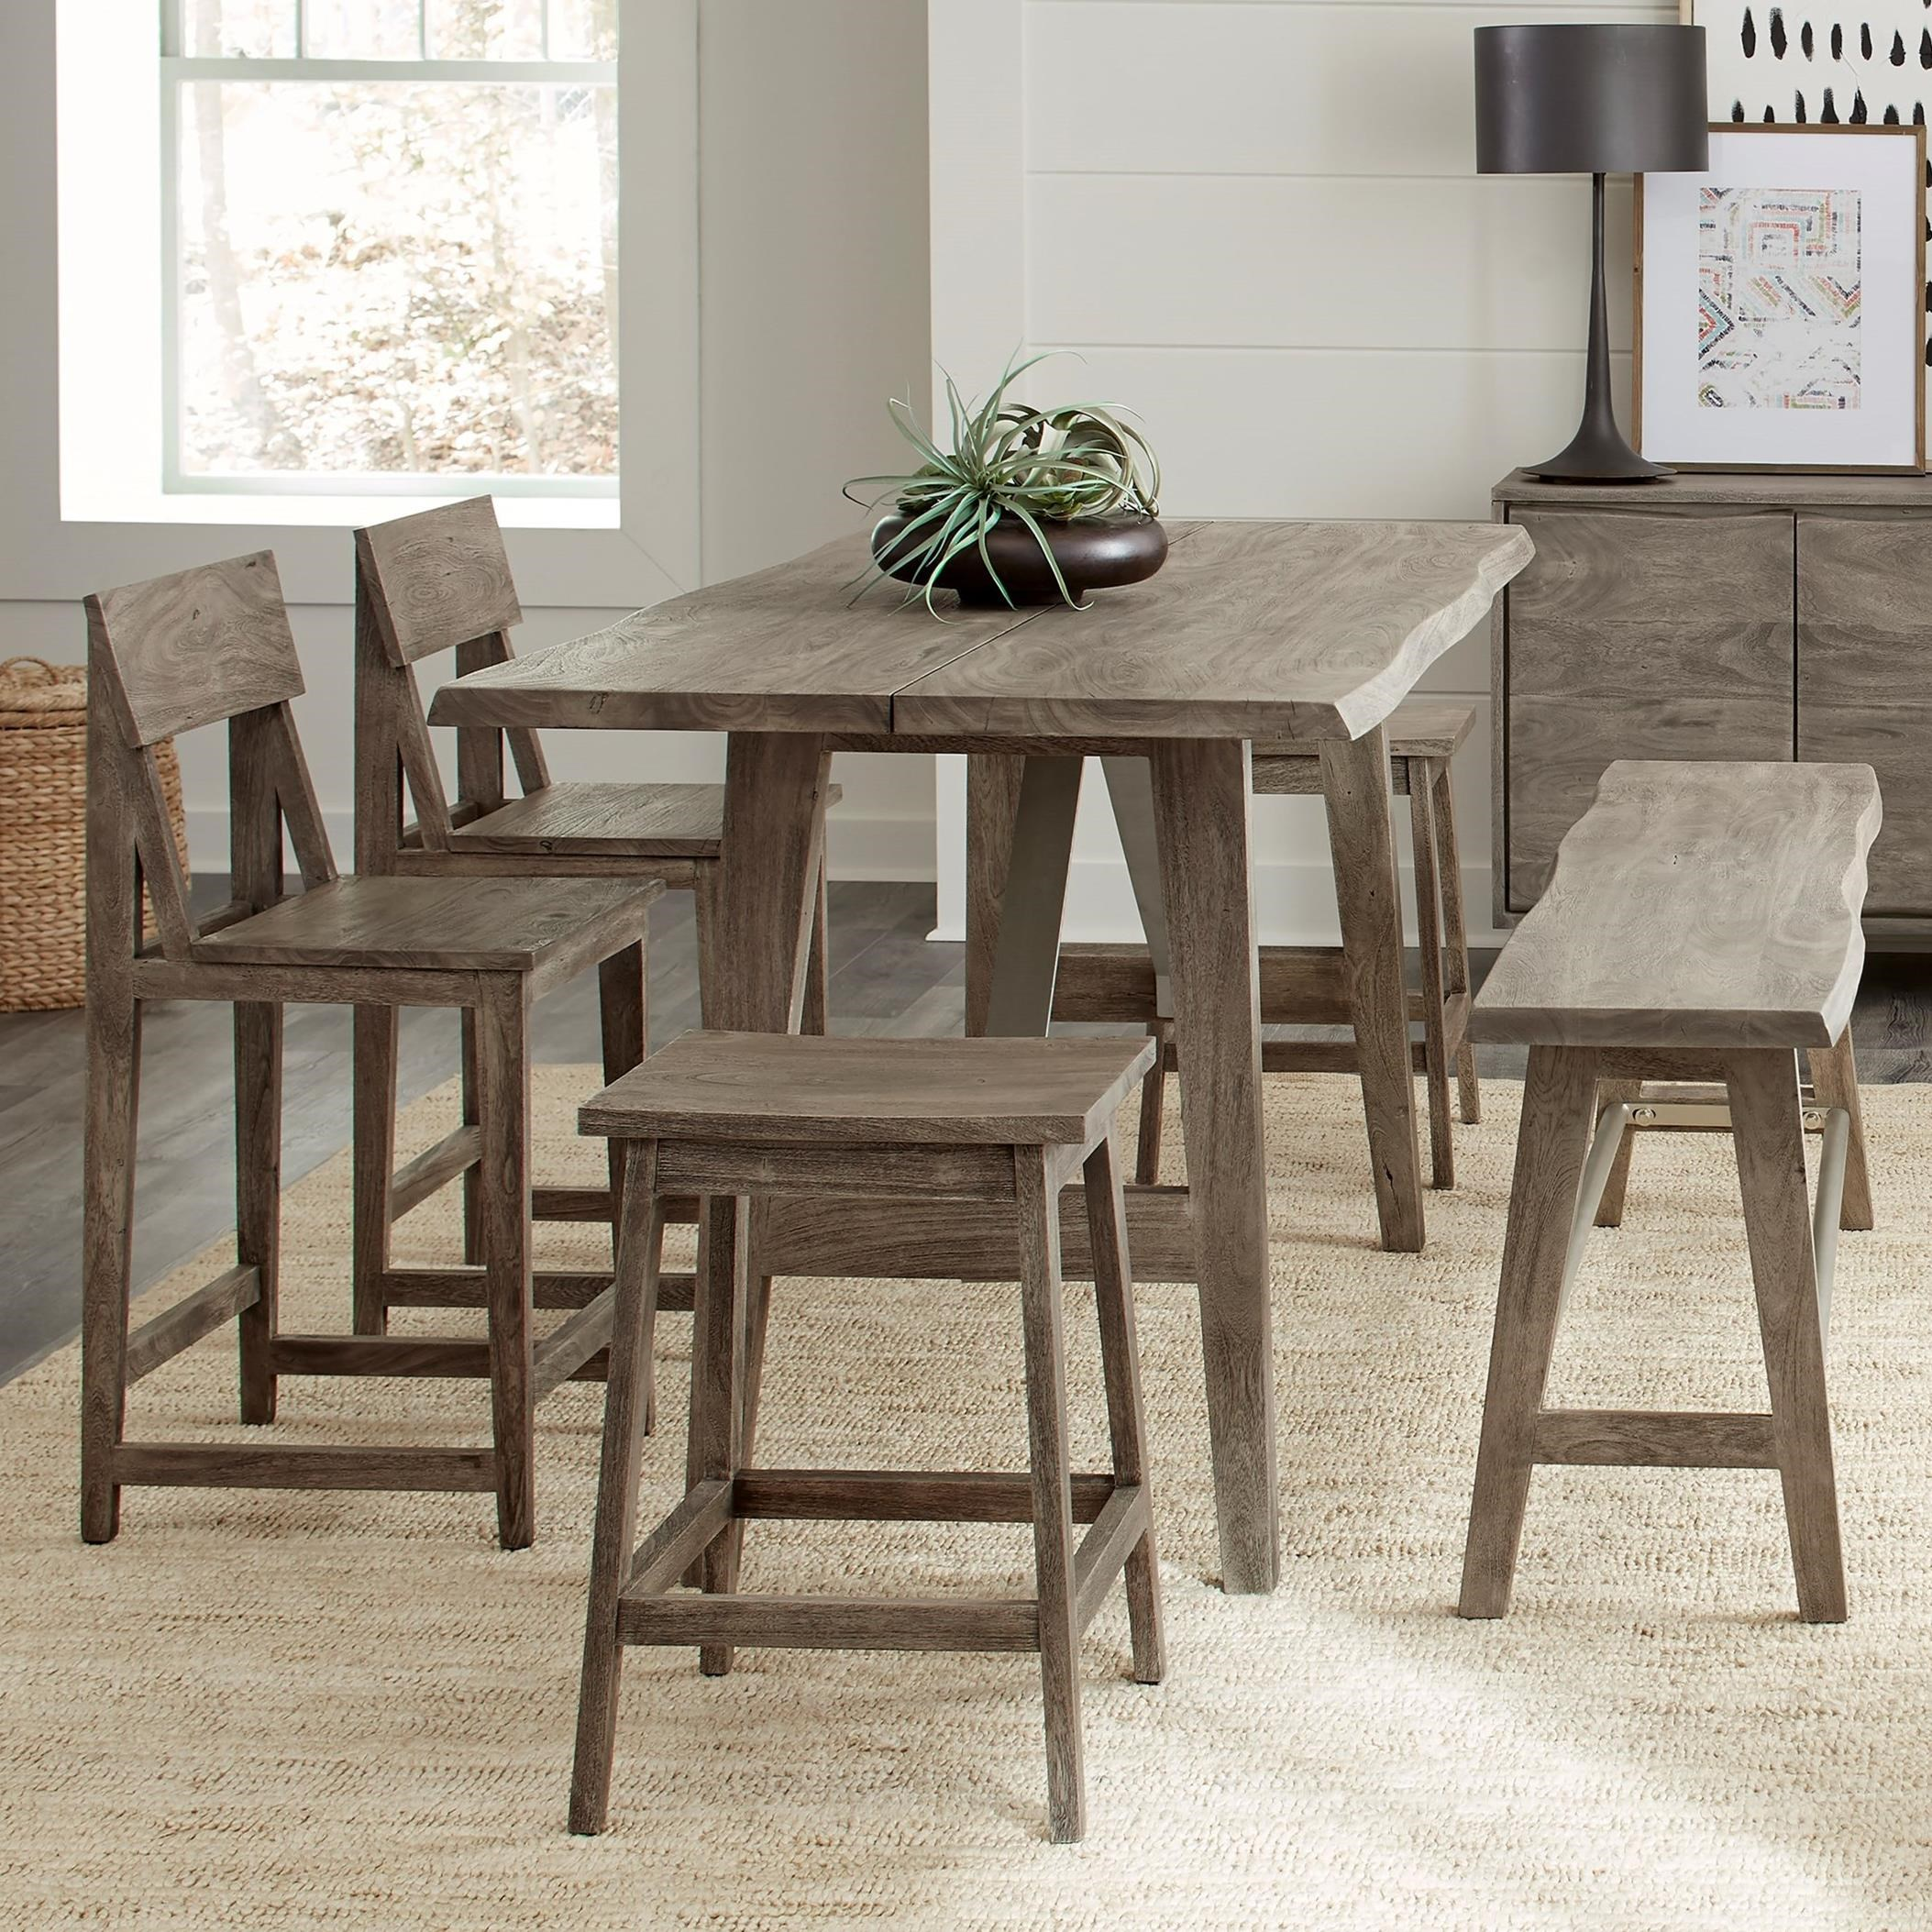 Waverly 6-Piece Counter Height Table Set by Riverside Furniture at Lucas Furniture & Mattress